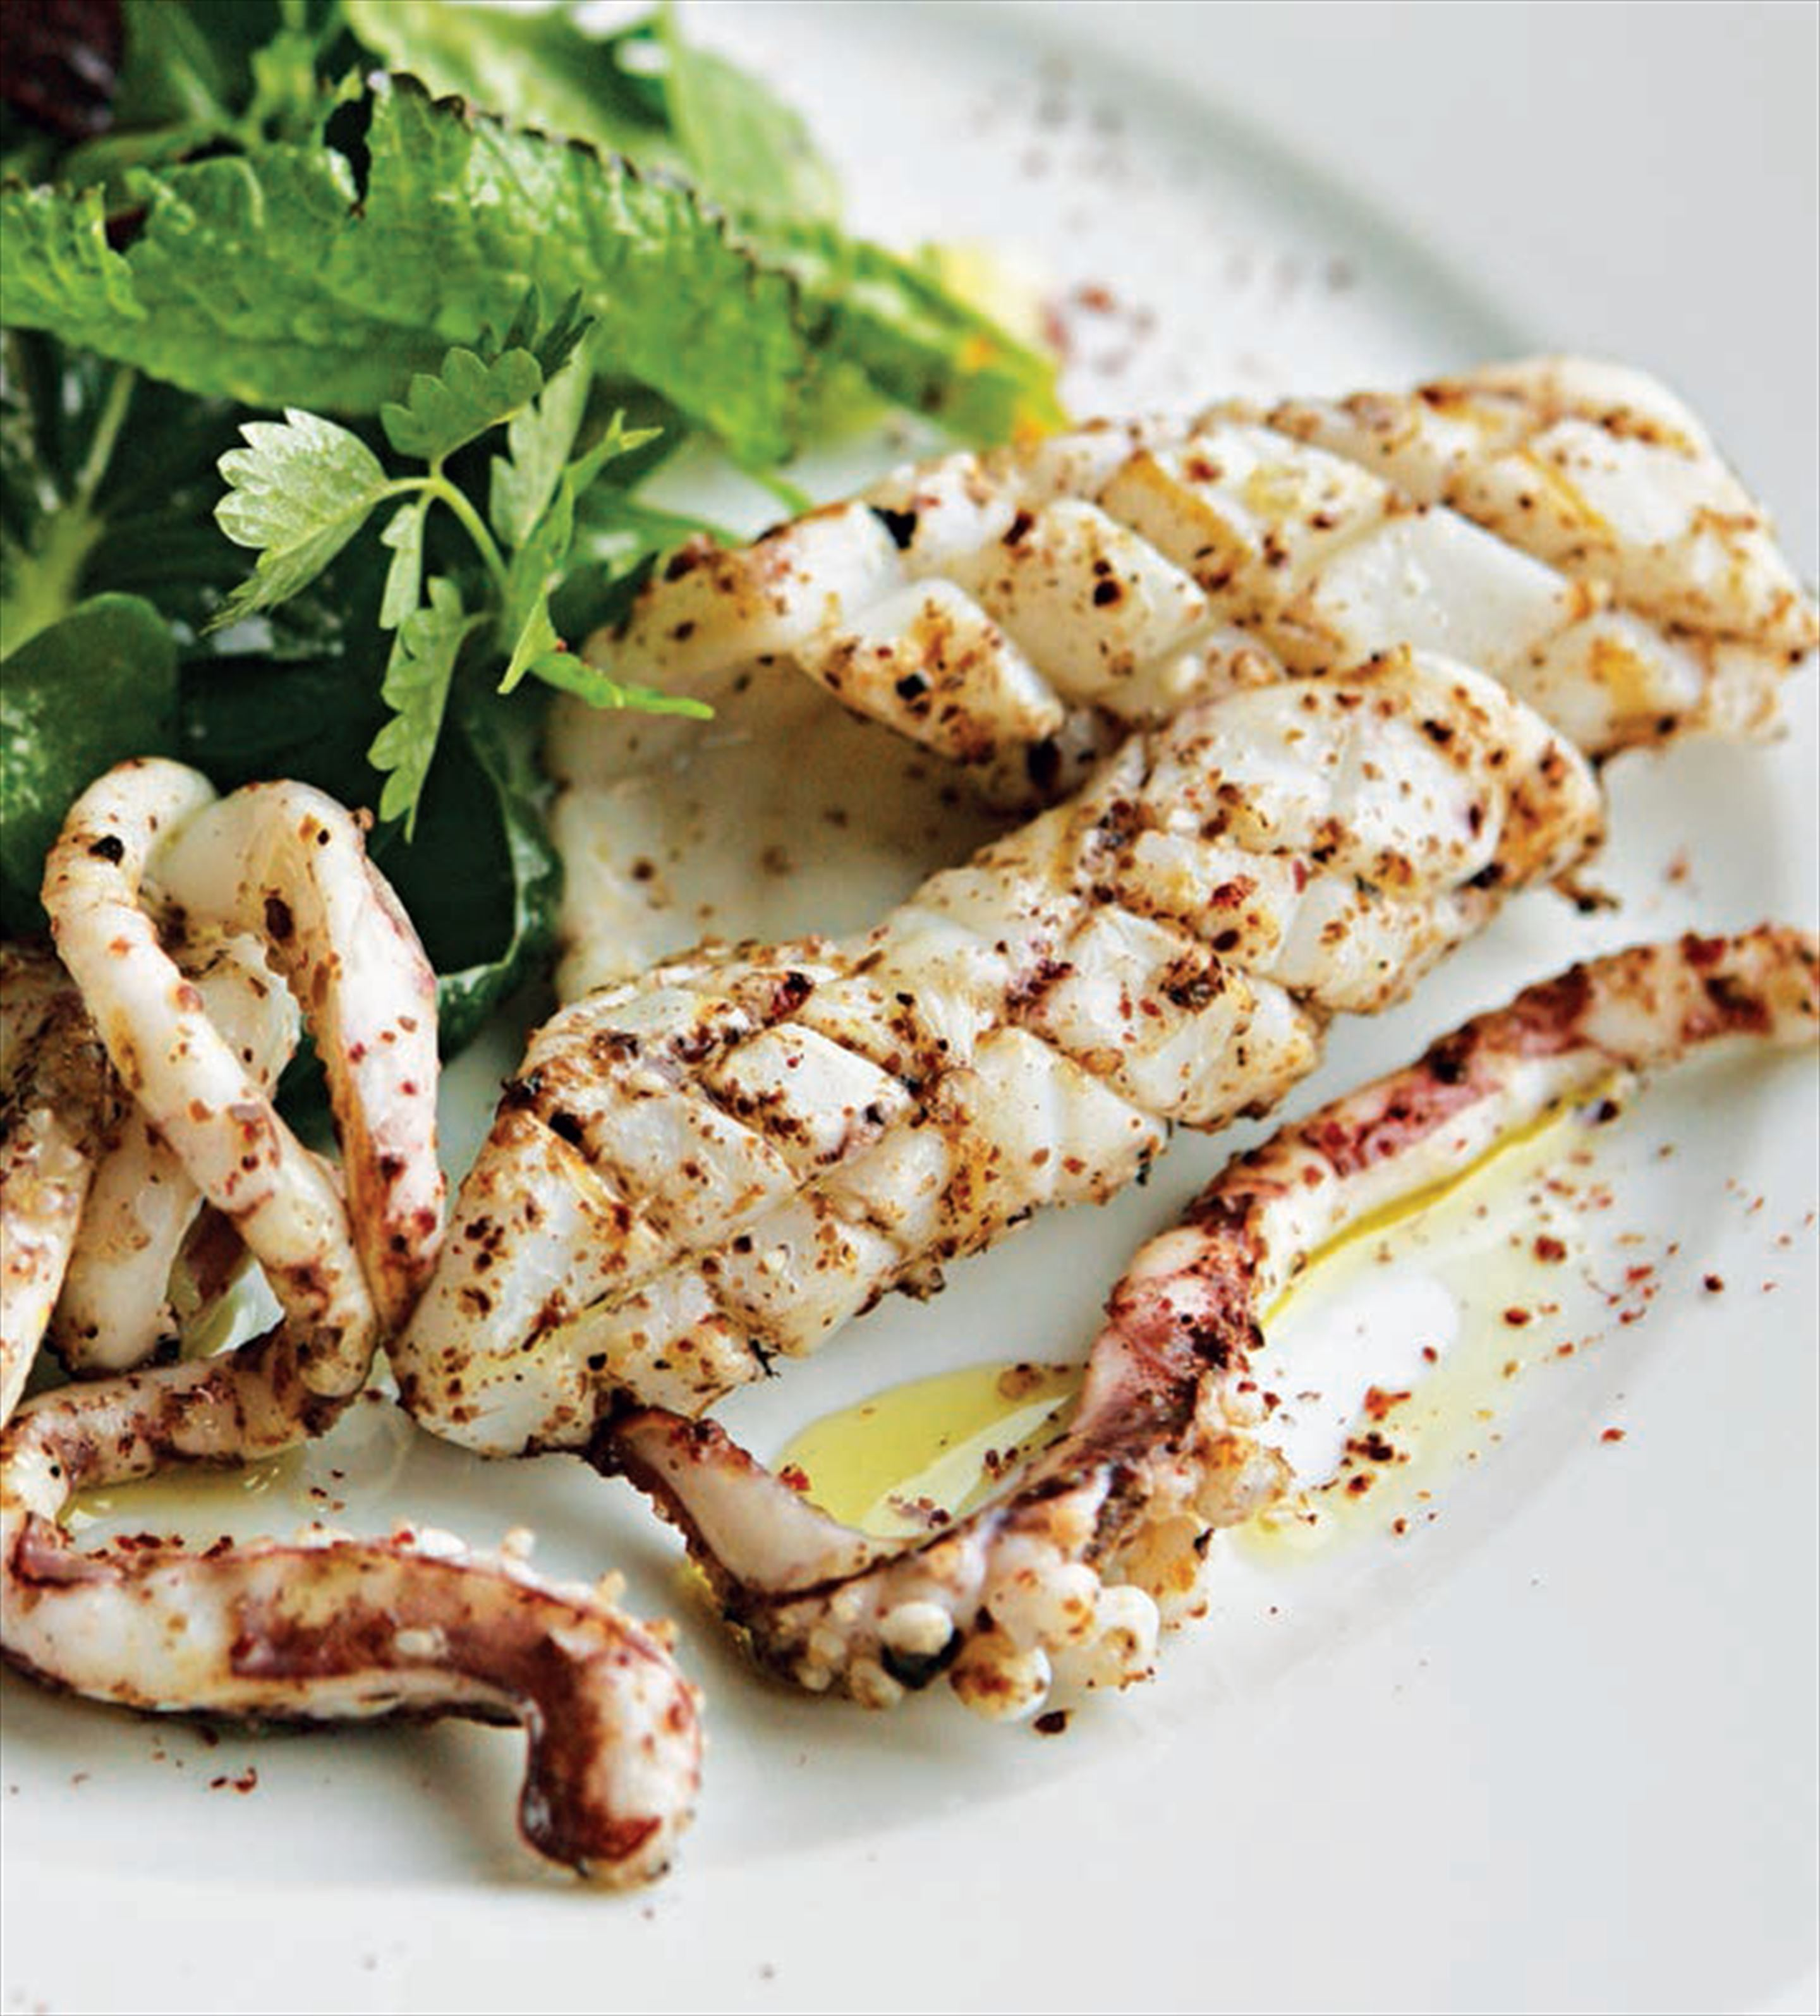 Seared squid